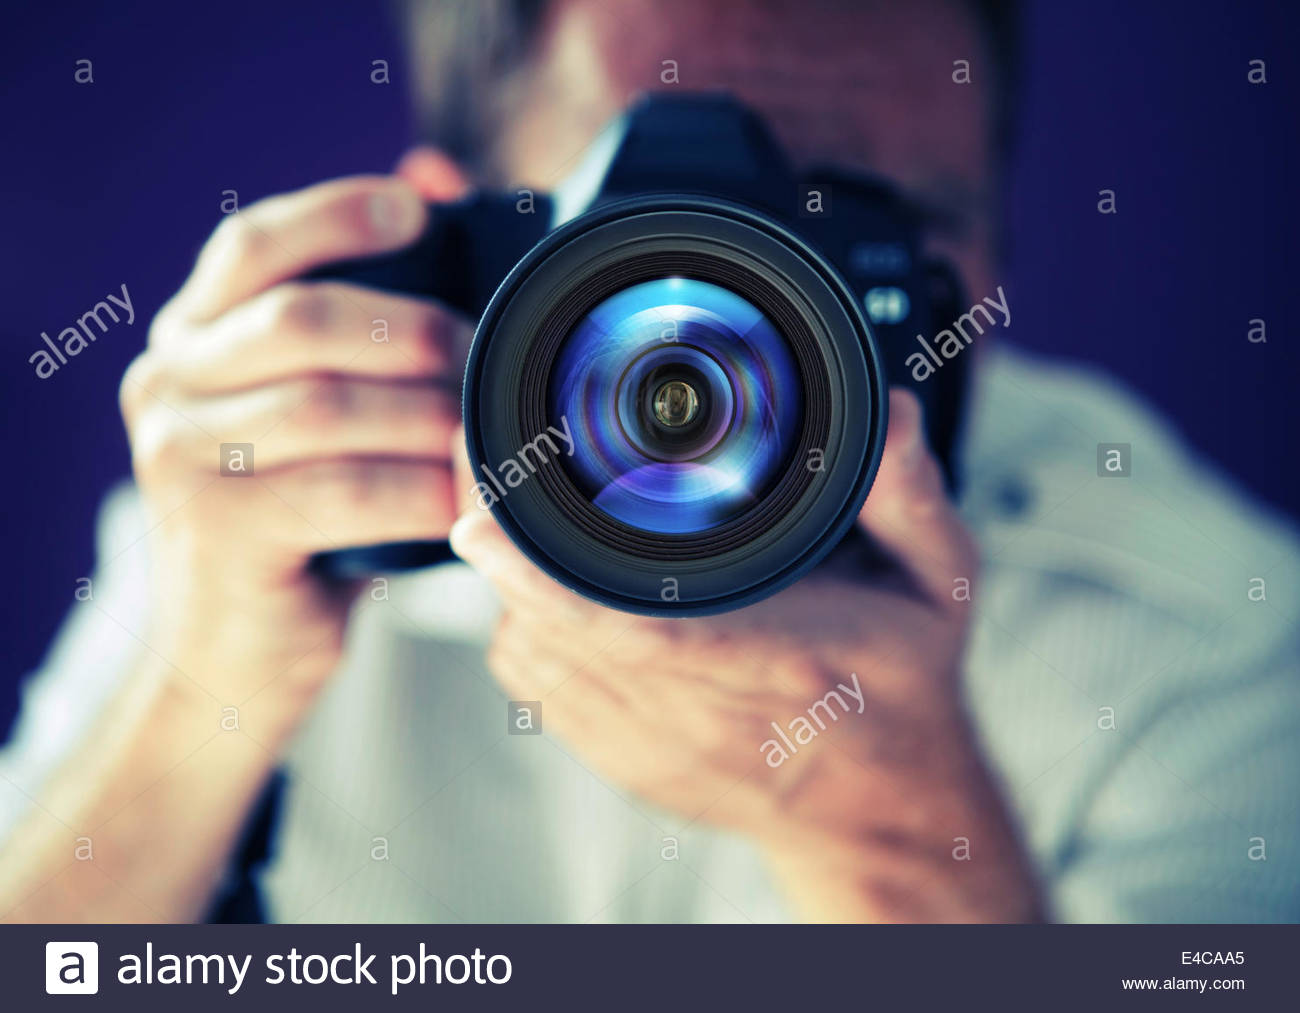 photographer - Stock Image